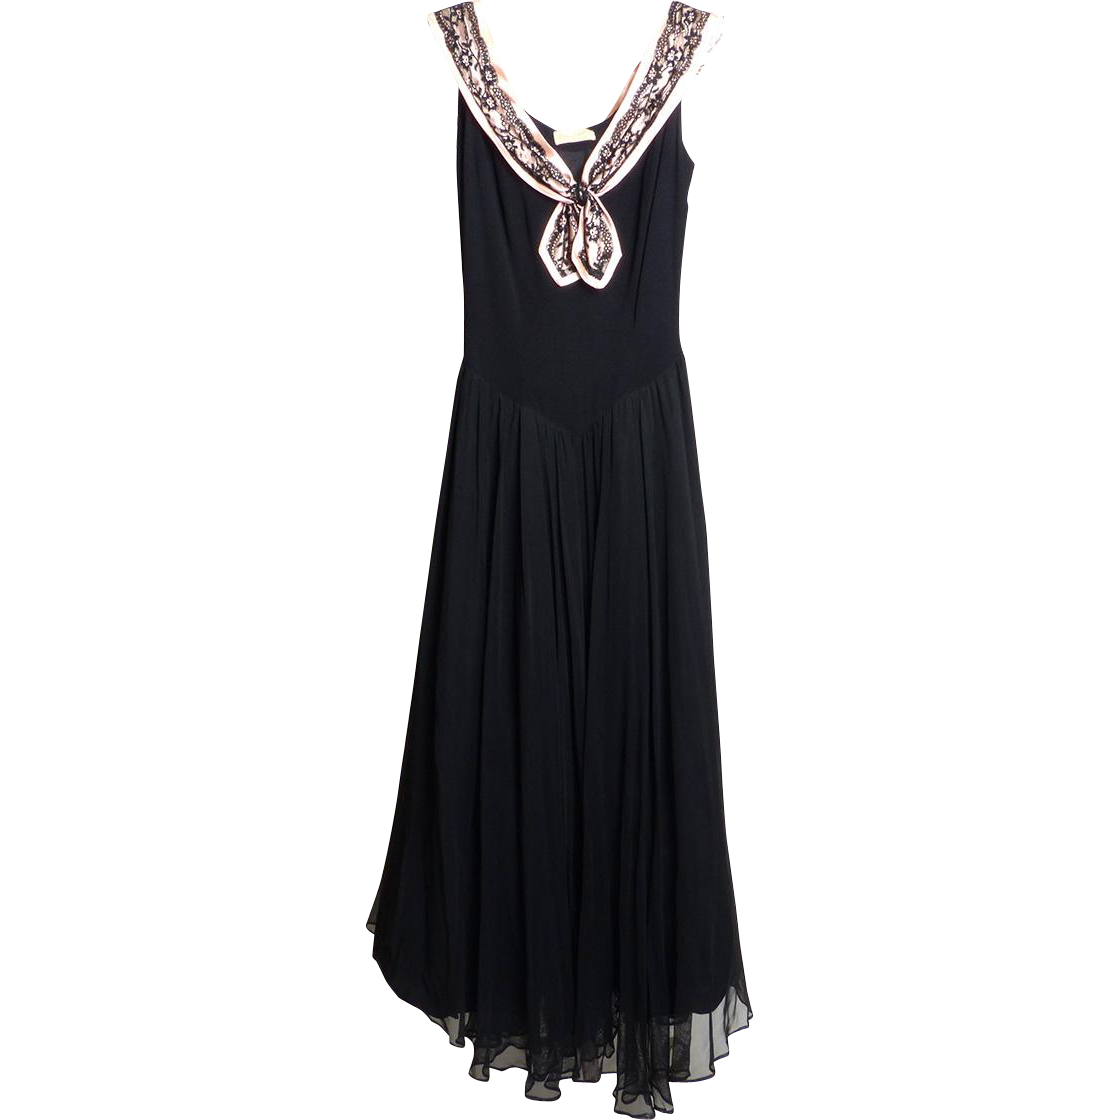 Circa 1950s Nathan Strong Basque Bodice Evening Dress